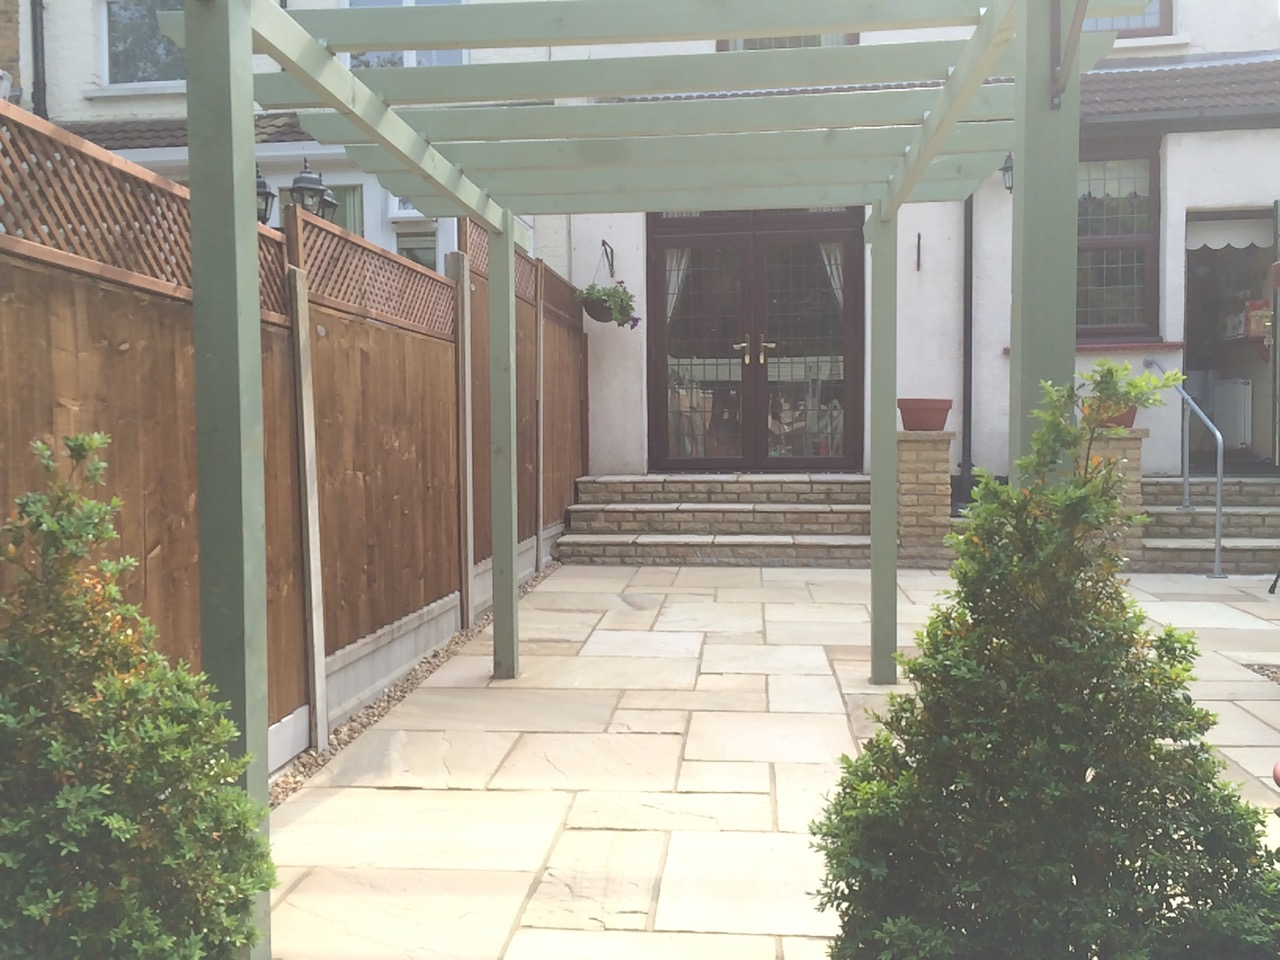 Landscape Garden Leigh On Sea : Mr mrs ross garden sos gardens landscape gardening